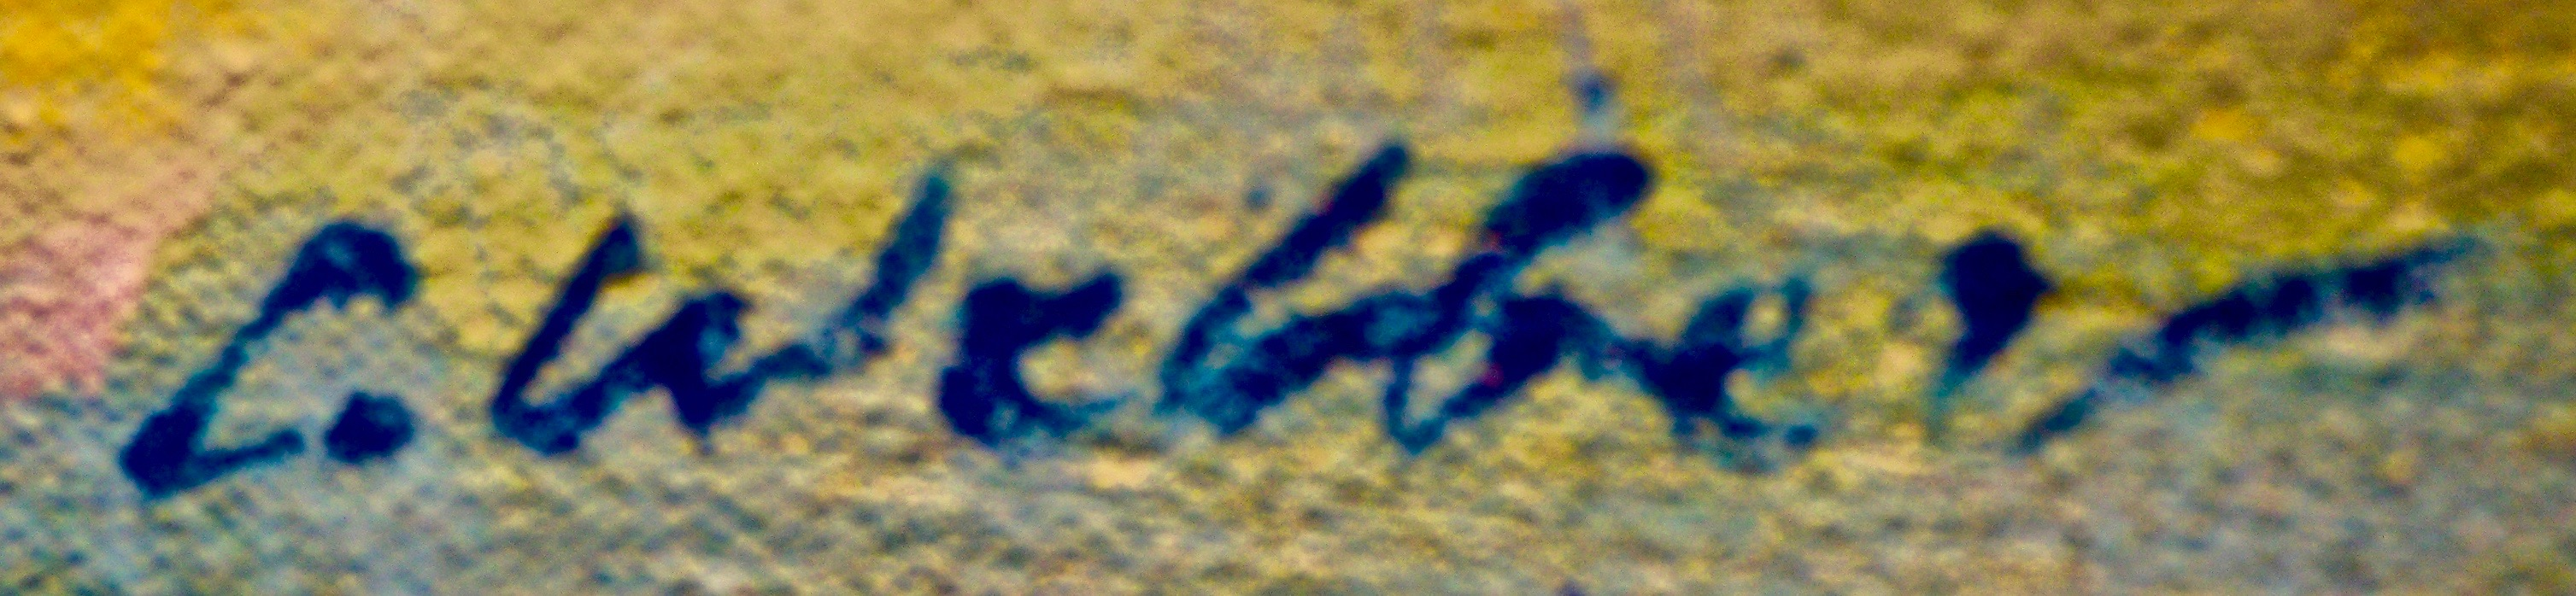 webberbydesign's Signature